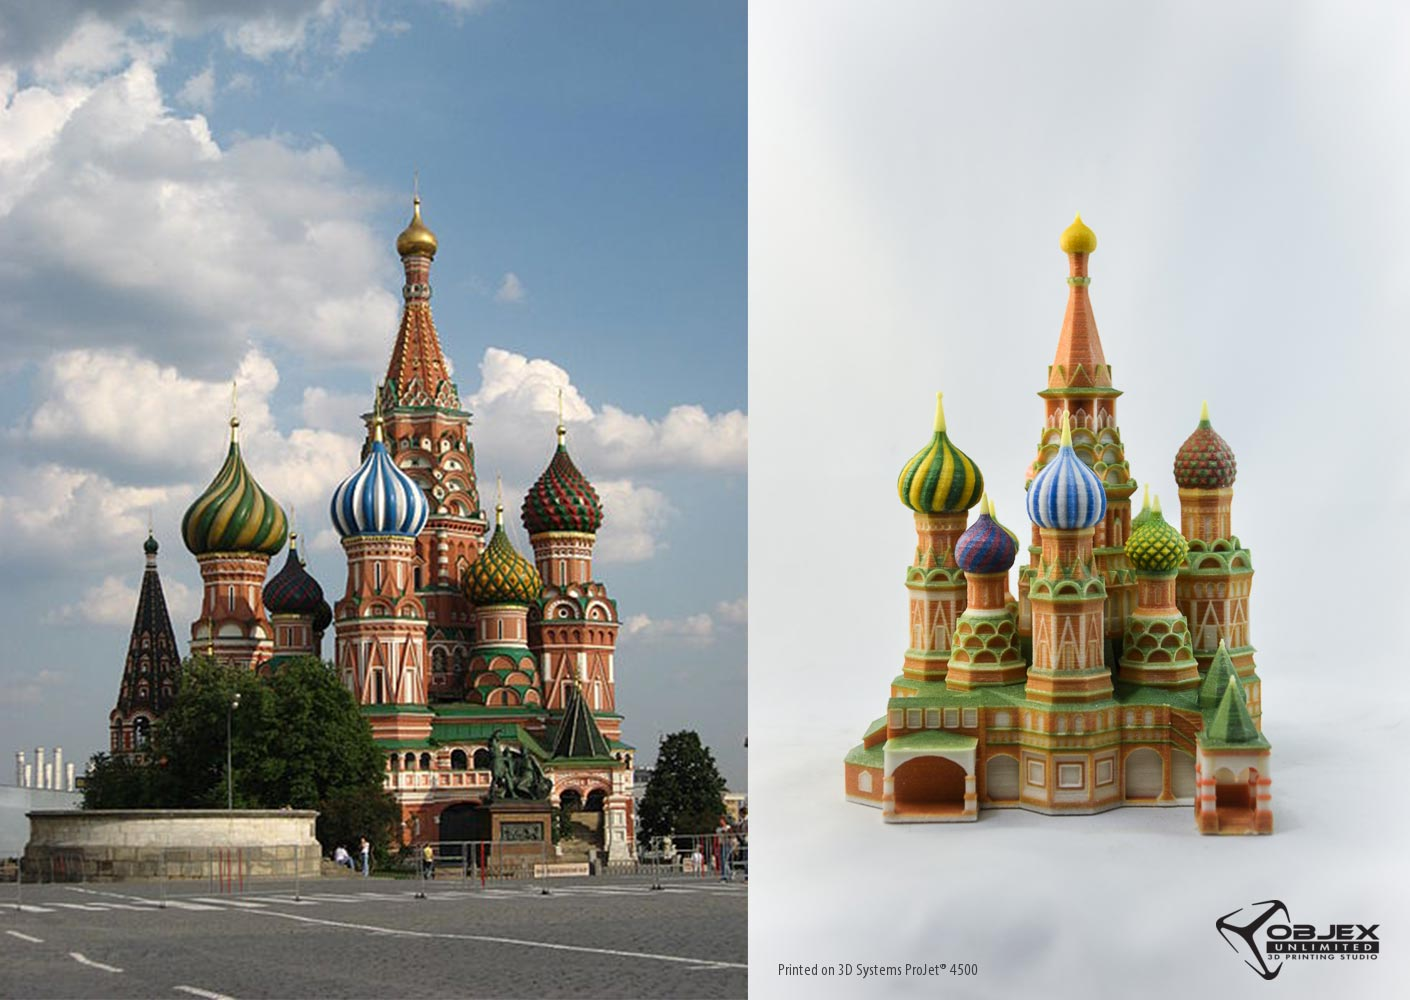 Visit St. Basil Cathedral from the safety of your desk.